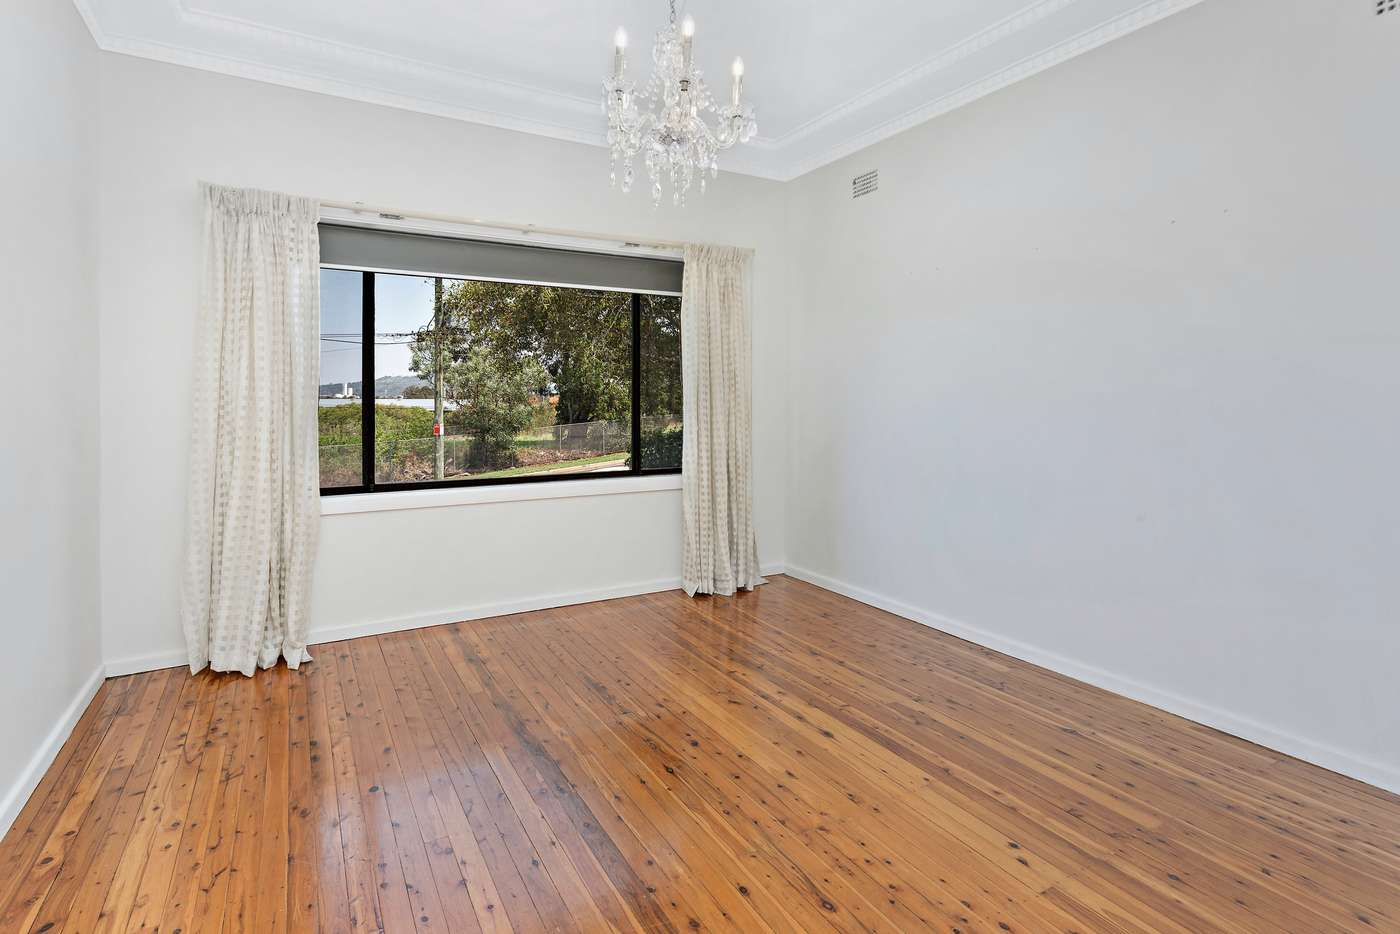 Fifth view of Homely house listing, 280 Gladstone Avenue, Mount Saint Thomas NSW 2500